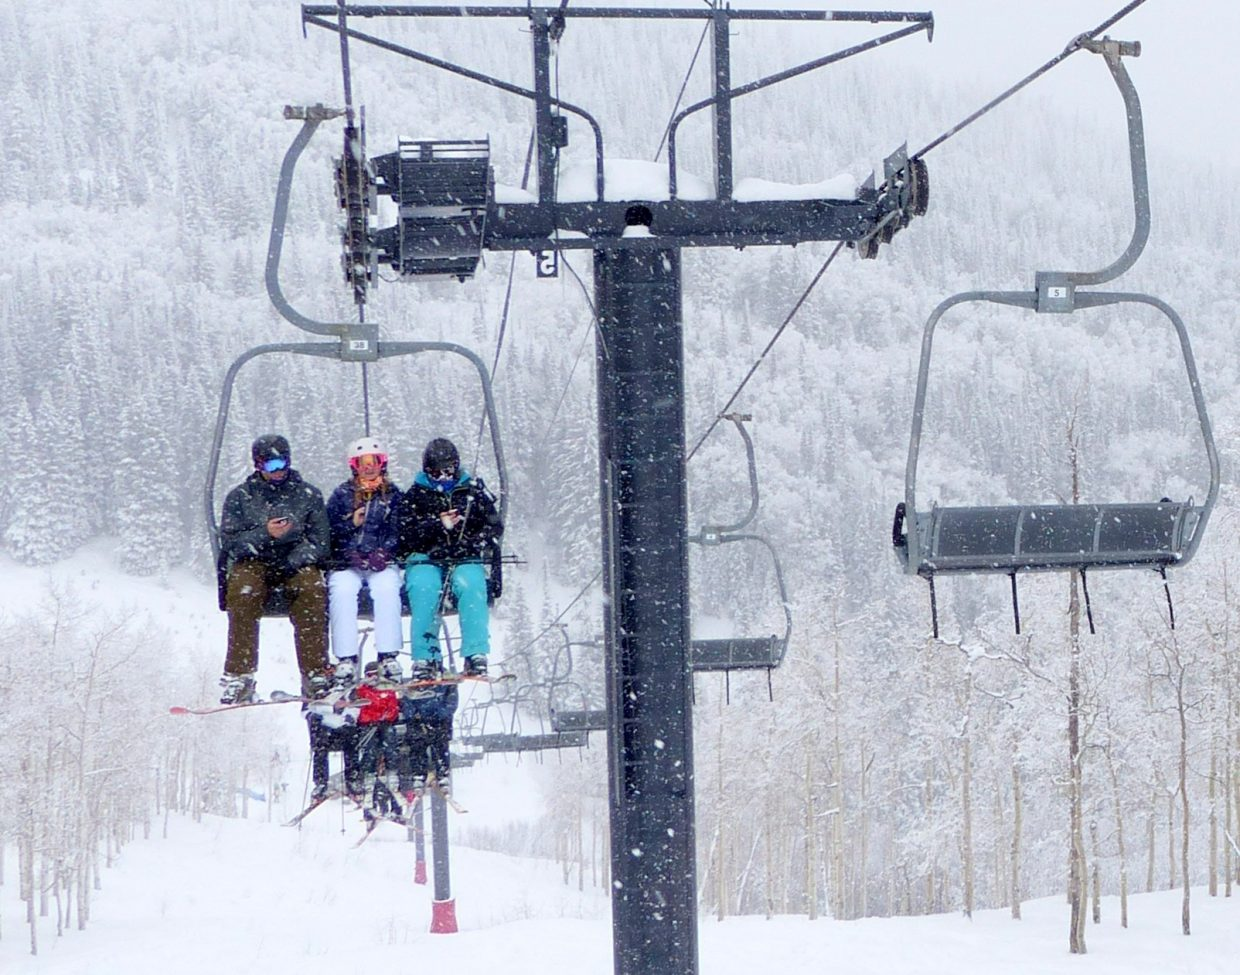 My three teenagers all looking at their phones on the chairlift, and taking Snapchat pictures. Submitted by: Shannon Lukens